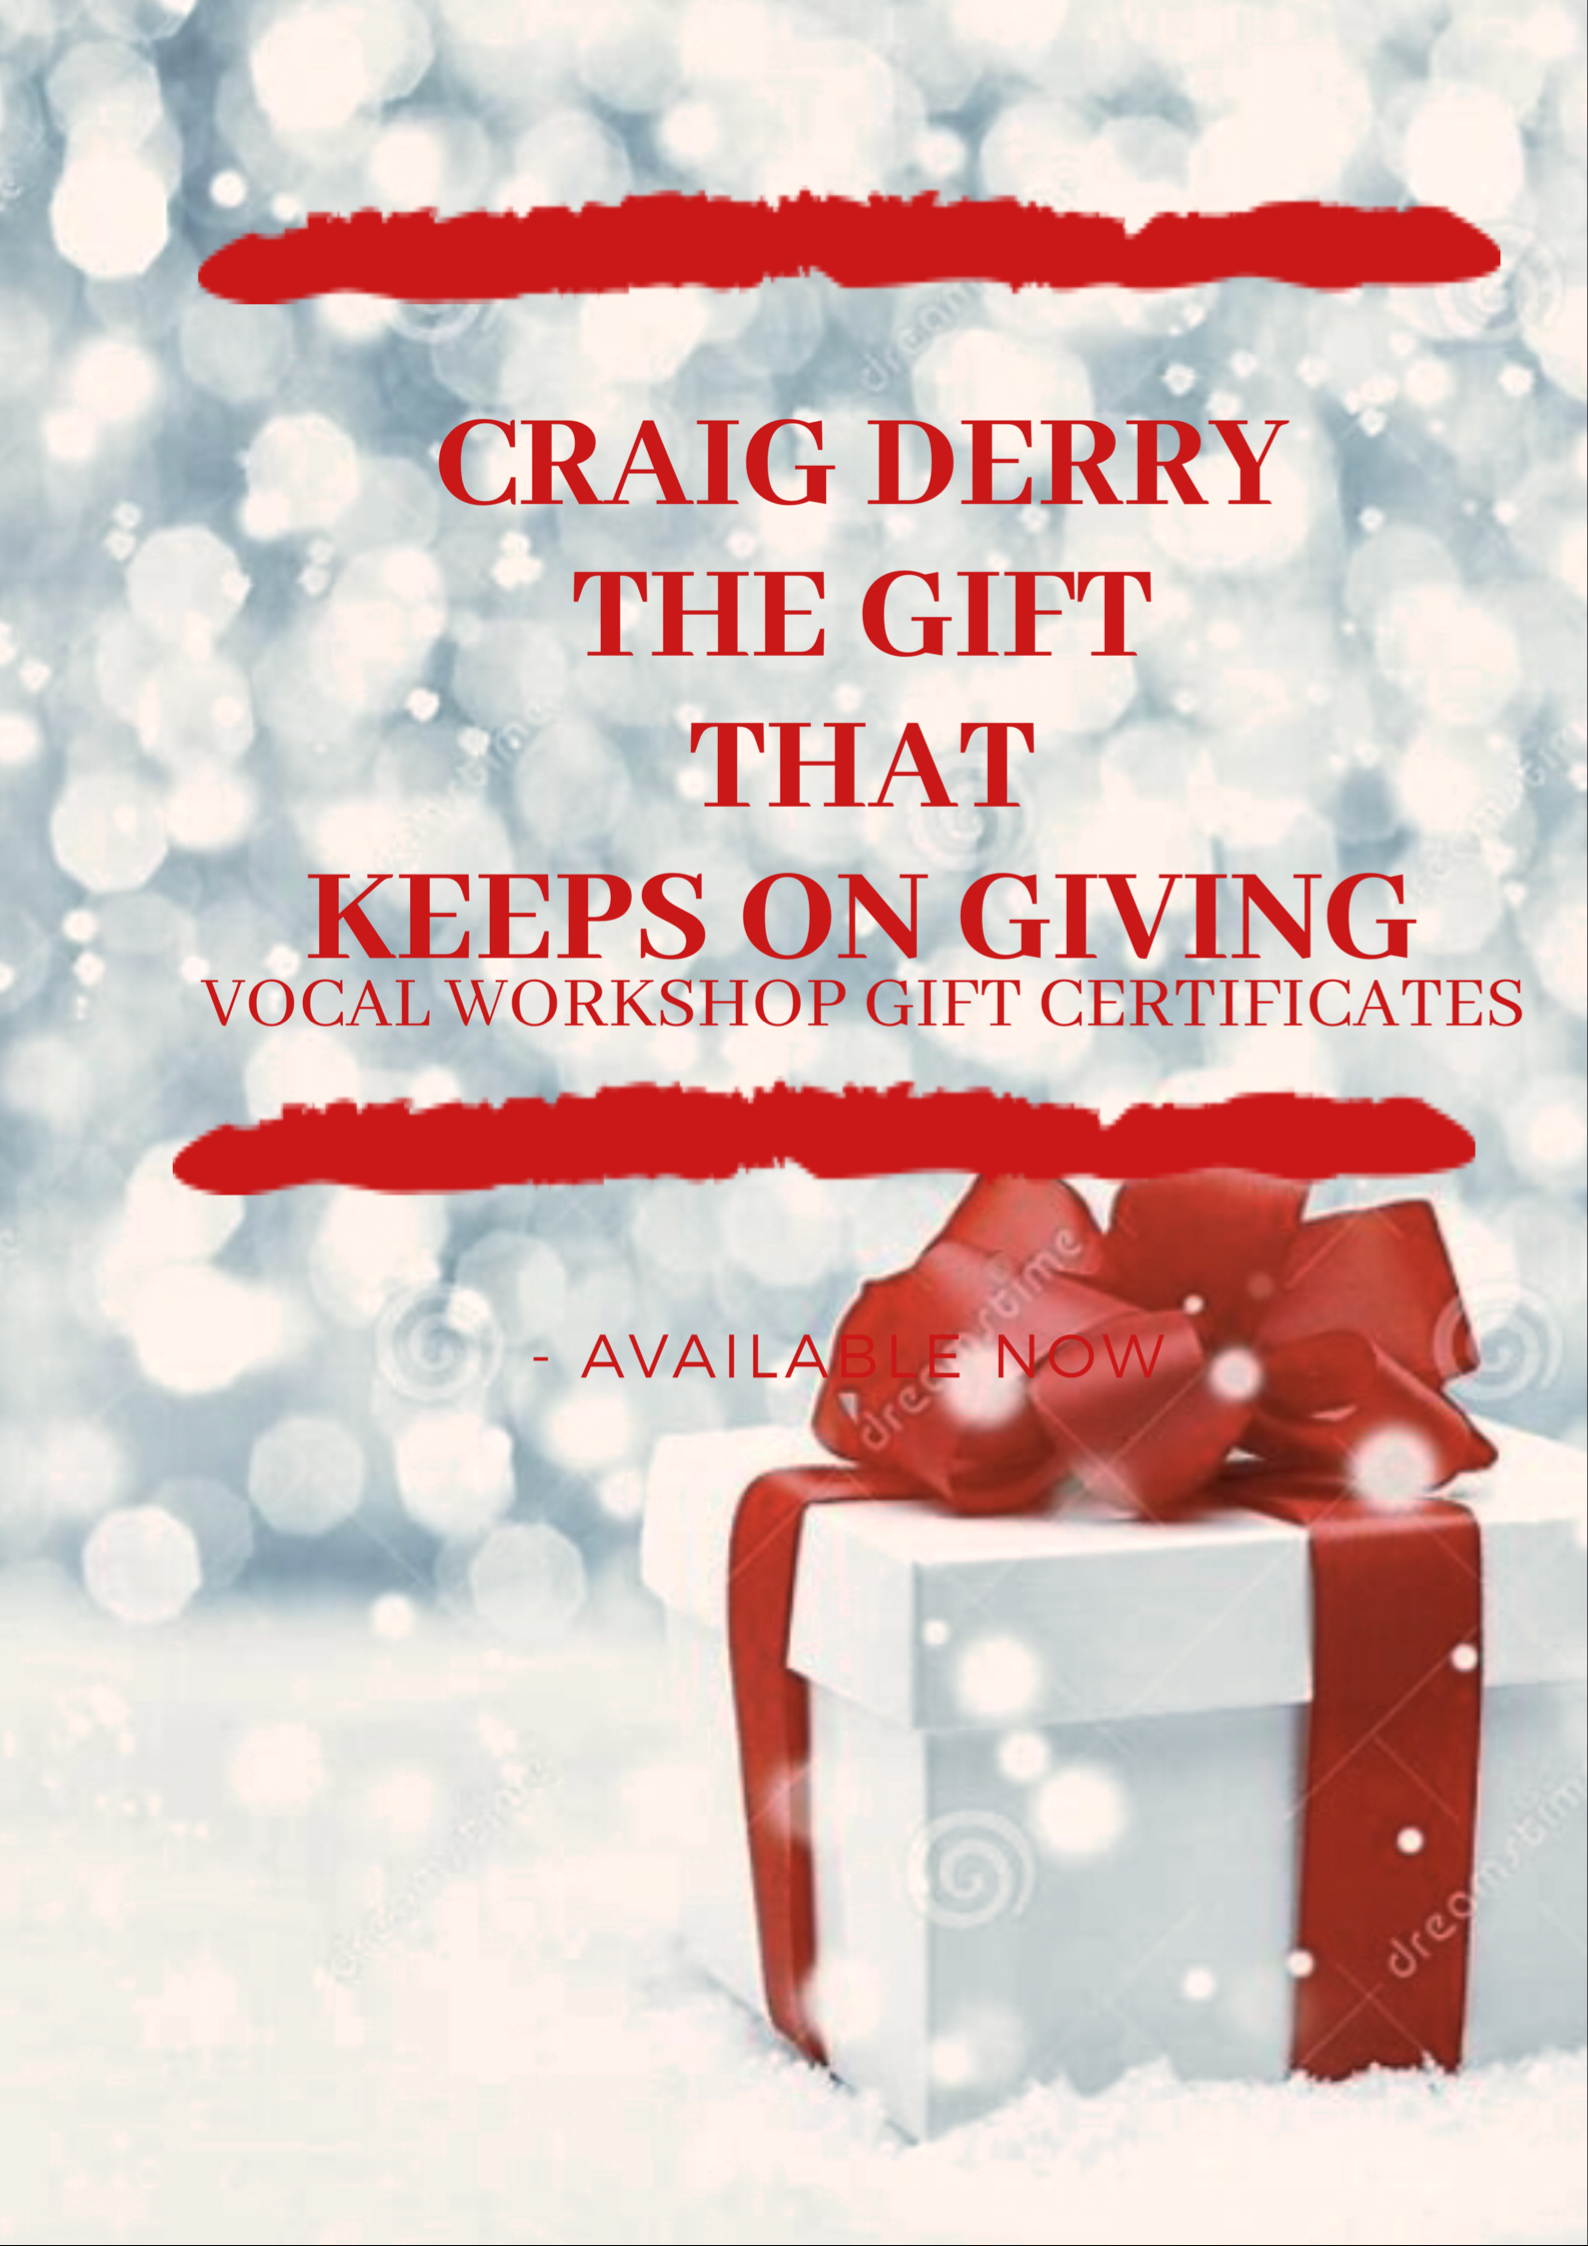 Tis' the season of giving! Give or ask for a gift certificate for Craig Derry's Vocal Fitness WorkOut Program. In $150 increments, This gift gives the artist 30 days of Vocal WorkOut its the Gift of the Work that Works!